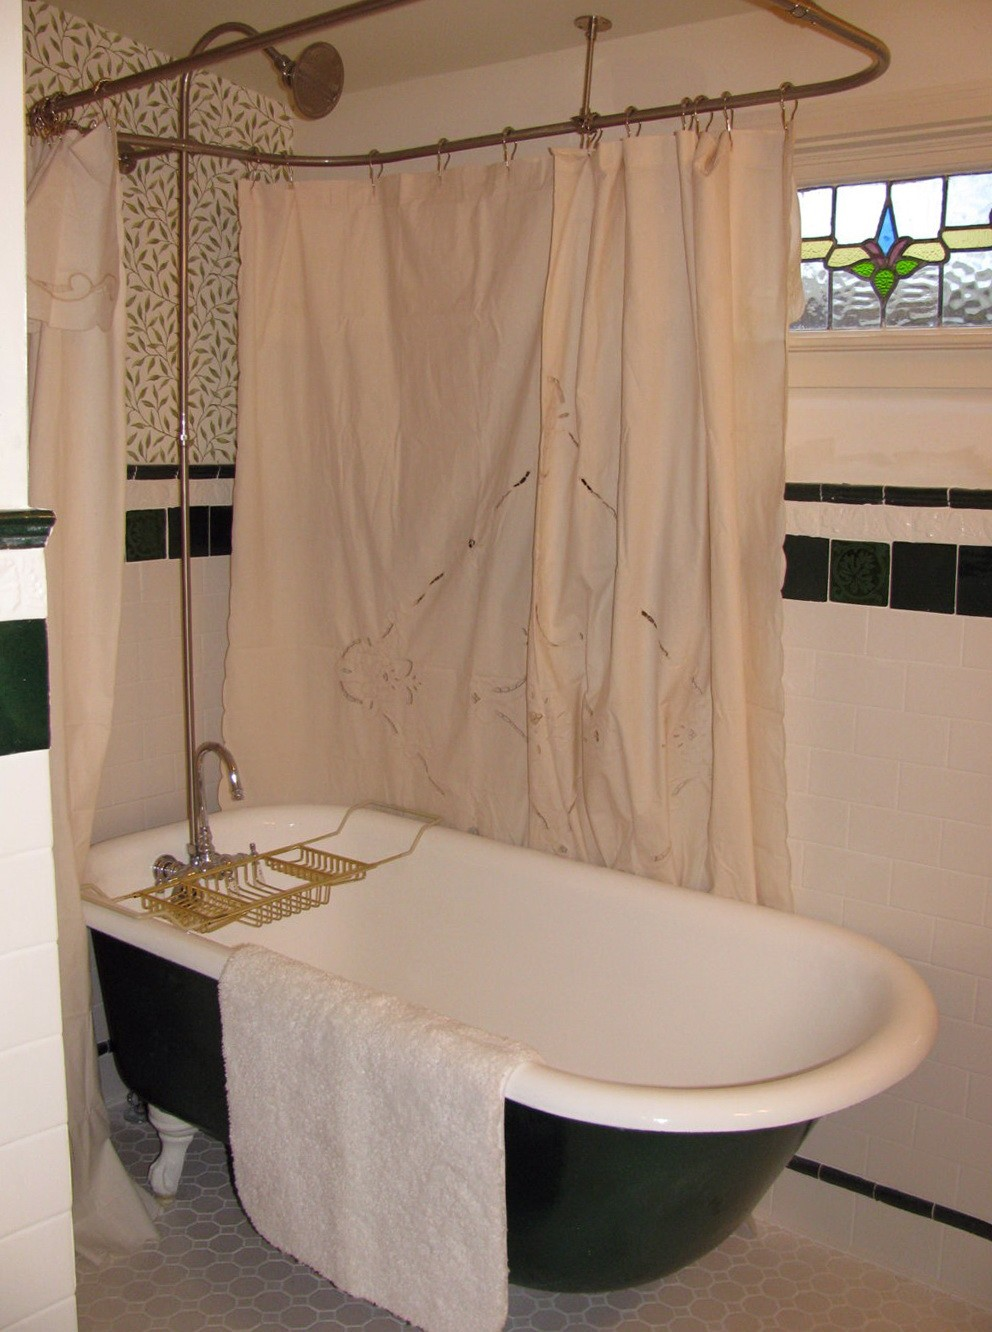 Shower Curtain Holder for Clawfoot Tub | Clawfoot Tub Shower Curtain | All Around Shower Curtain